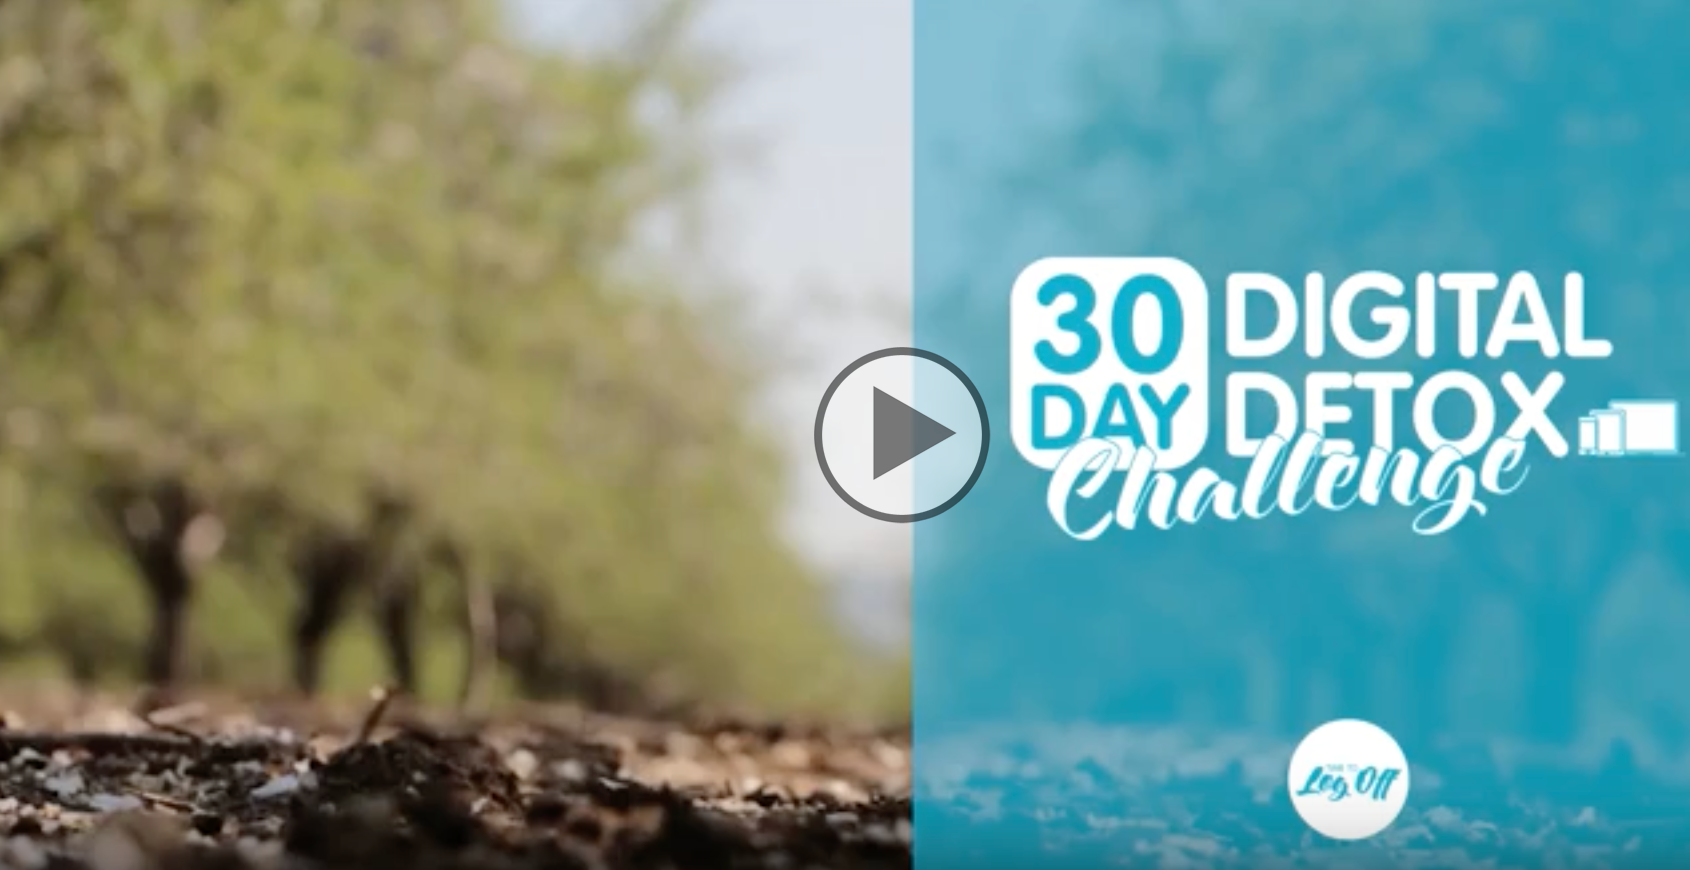 digital detox 30 day challenge